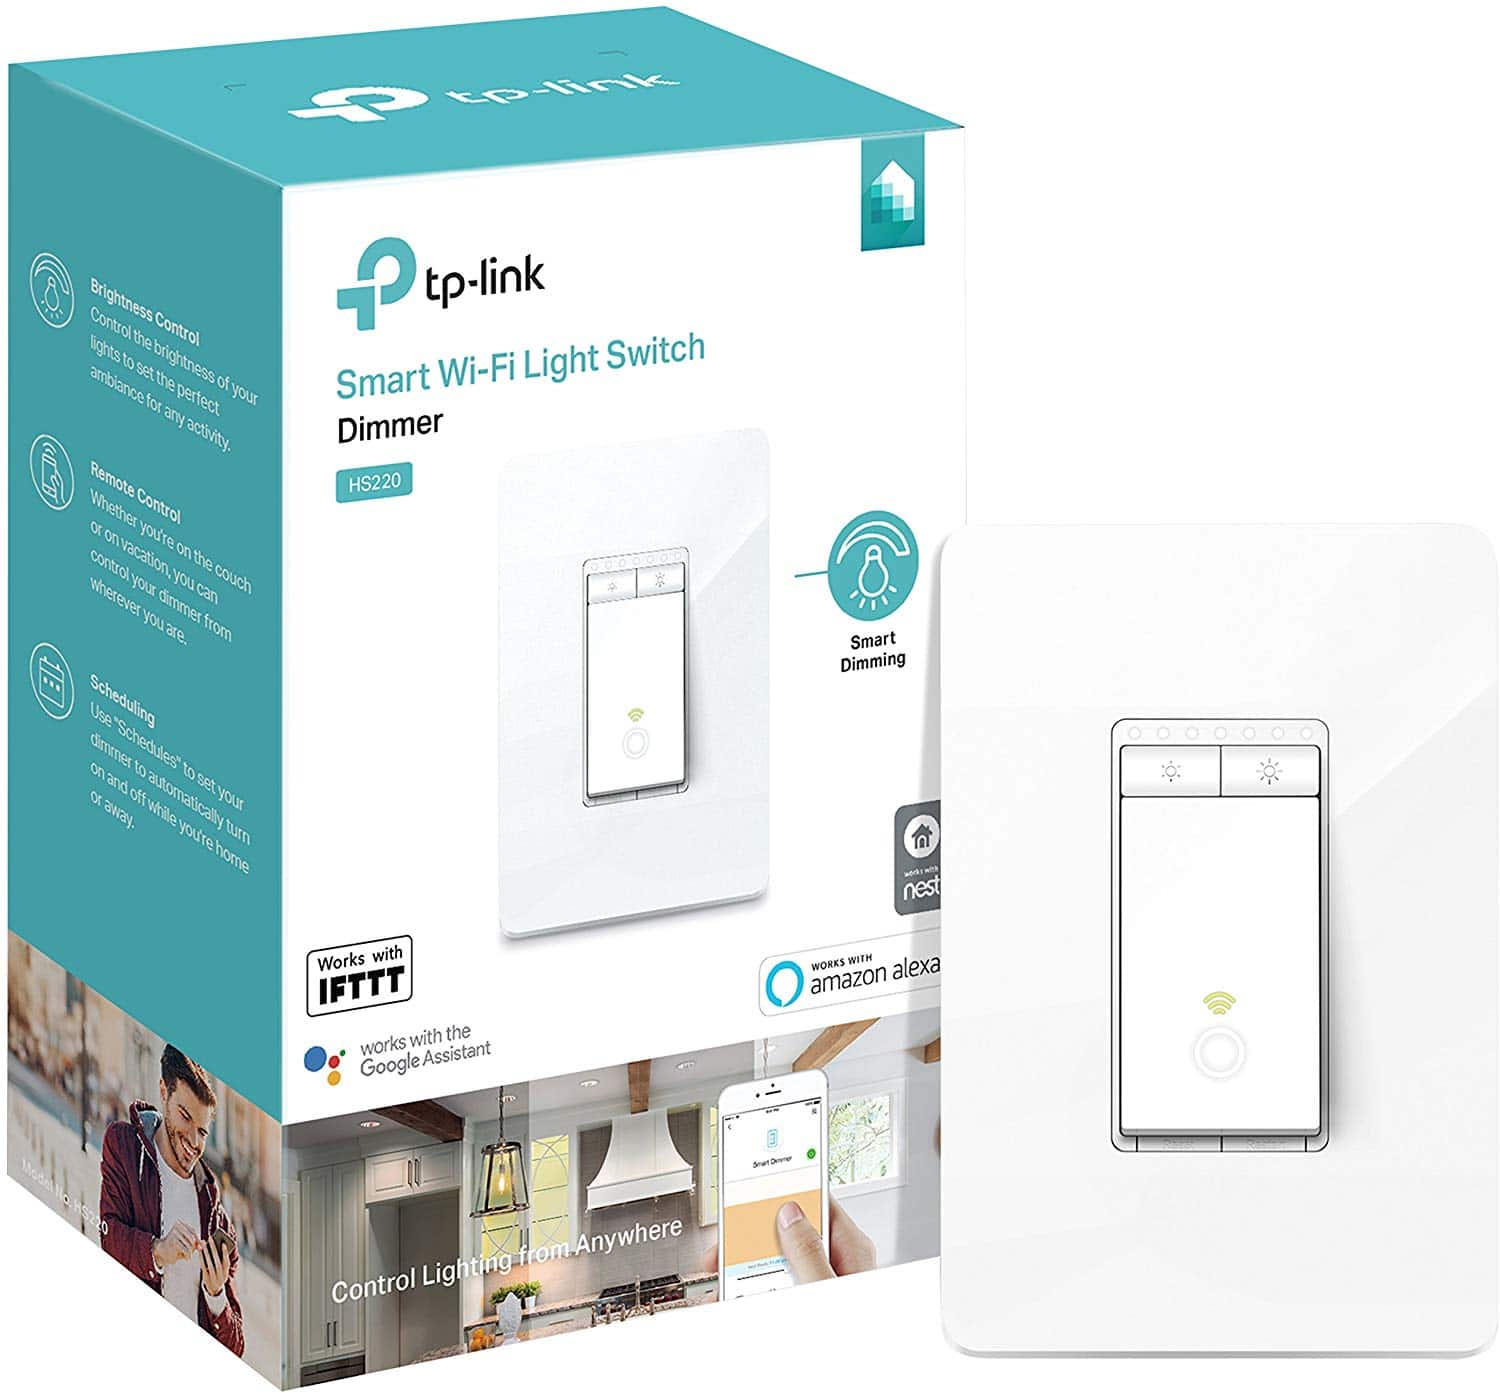 Kasa Smart WiFi Light Switch Dimmer (HS220) - $30 - Works with Alexa and Google